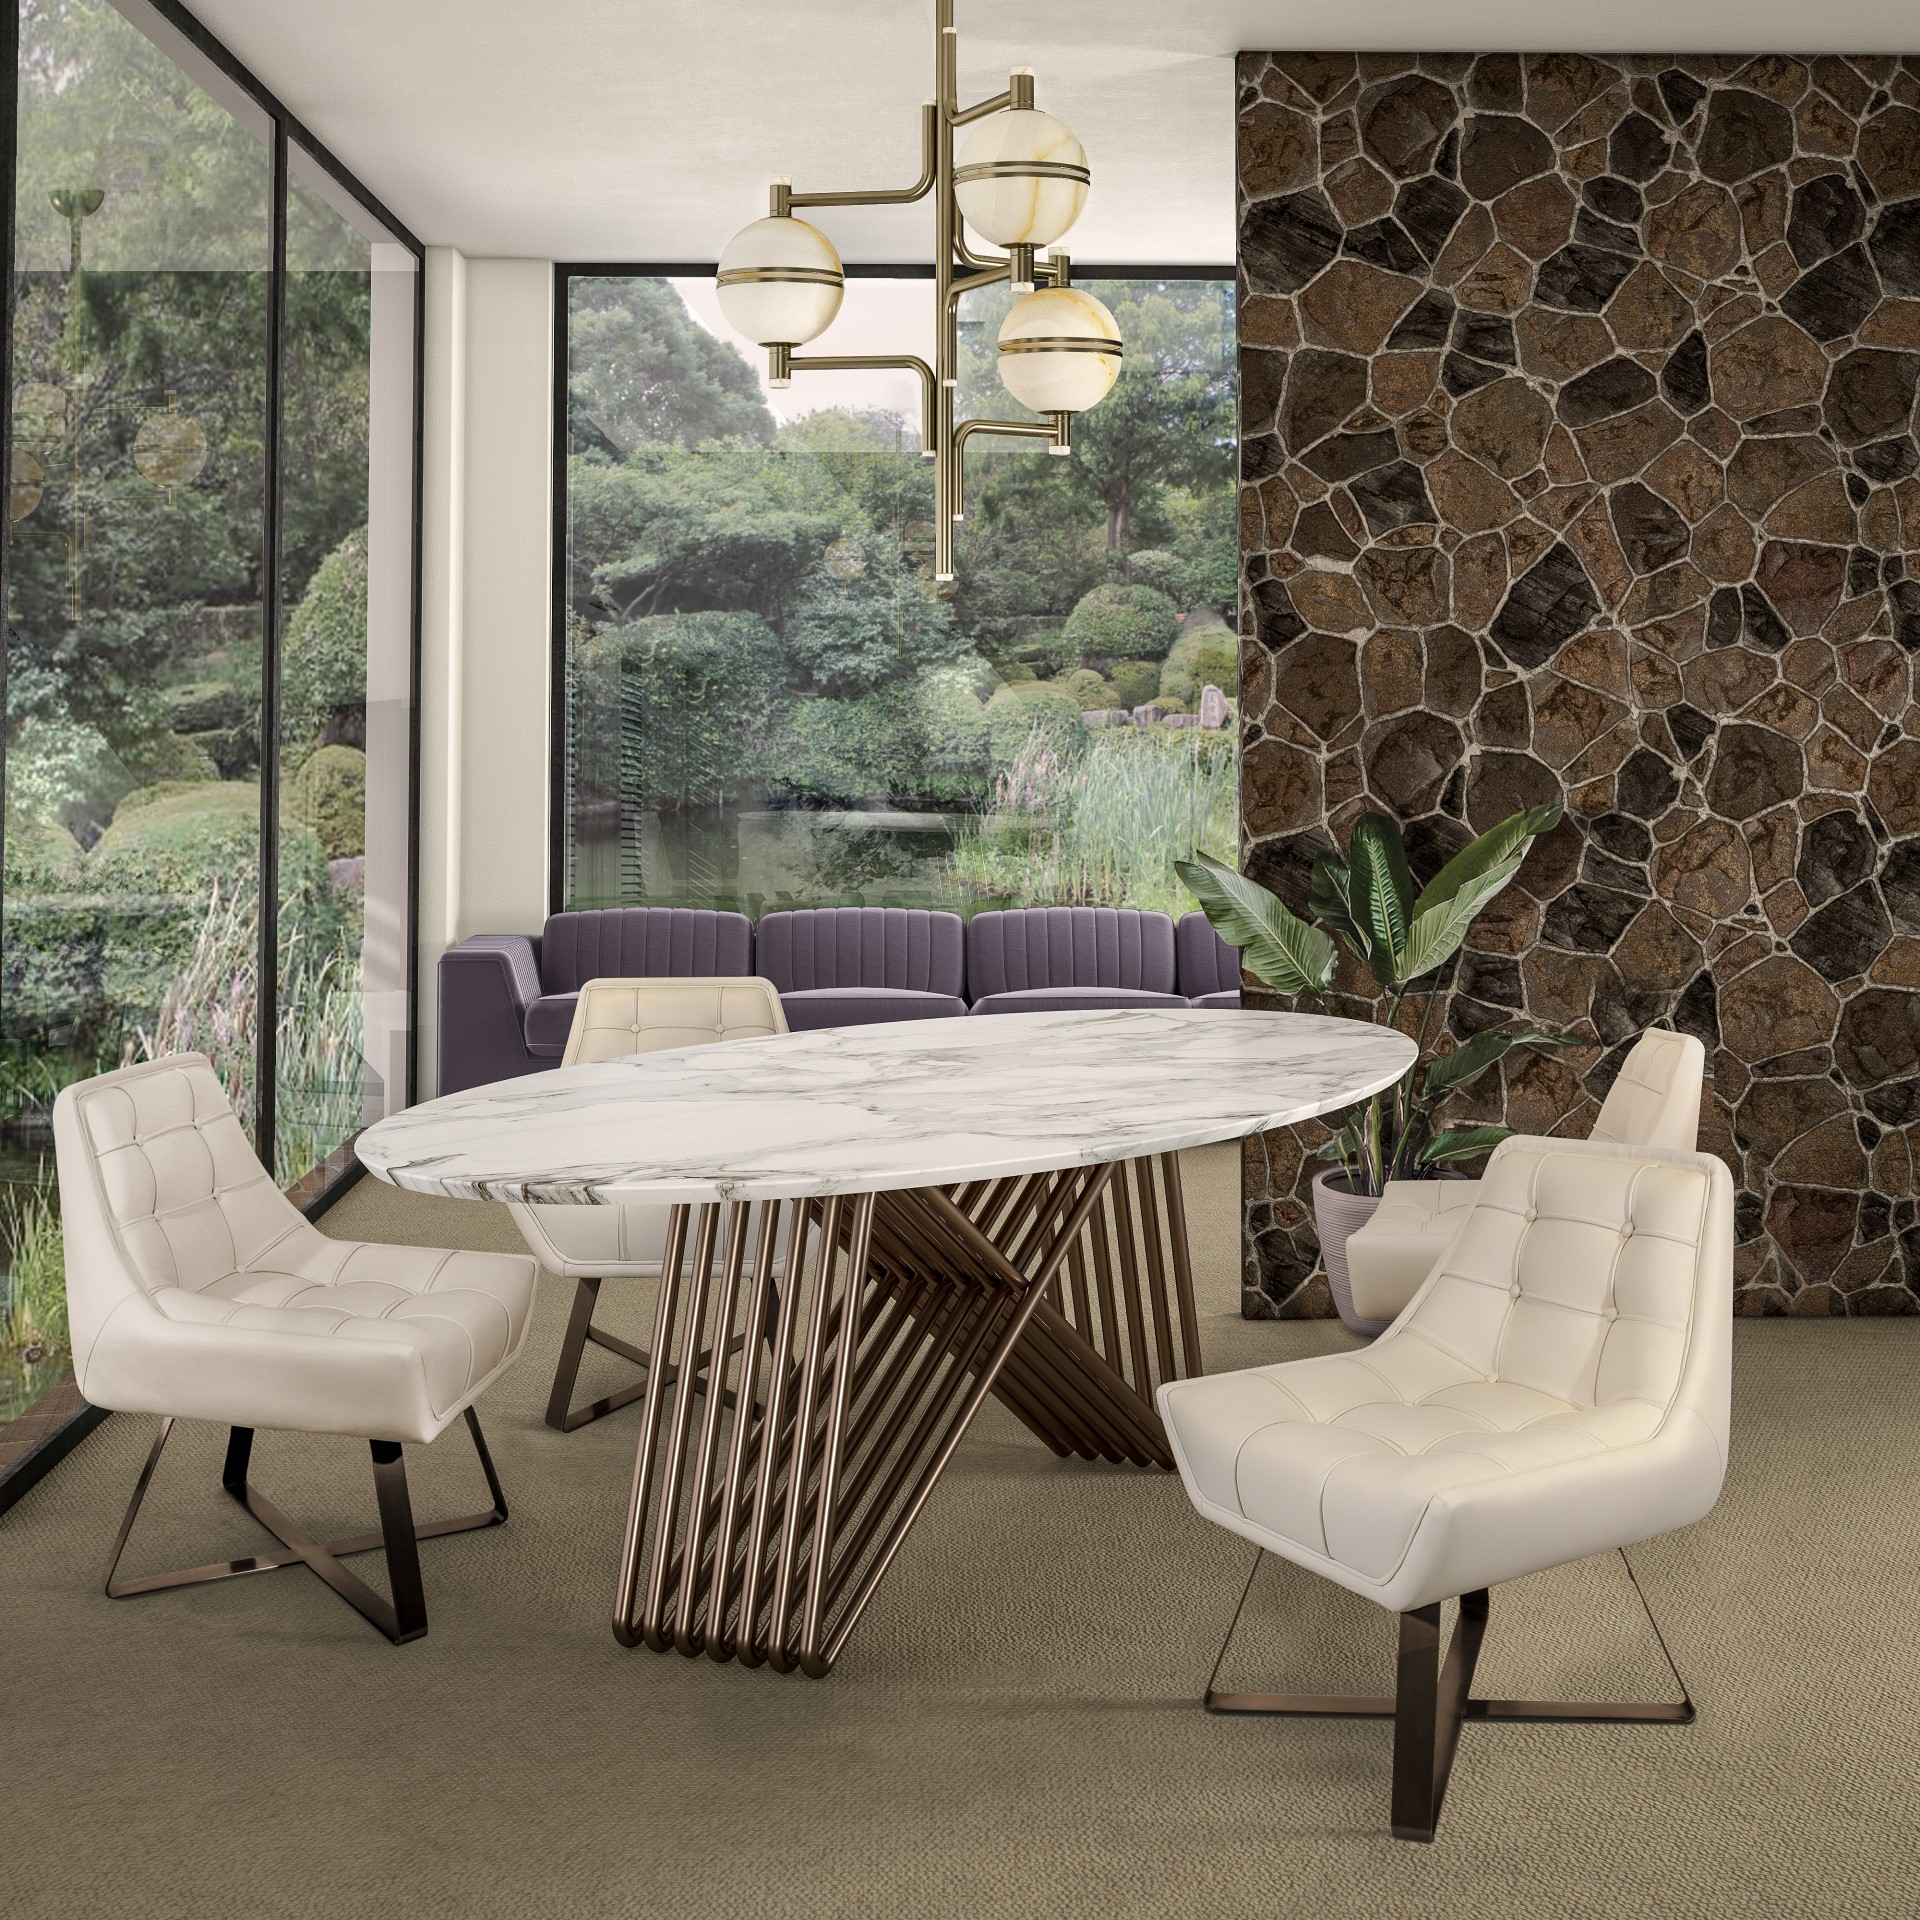 Kubrick Dining Chair, Yosemite Sofa and Broad Dining Table